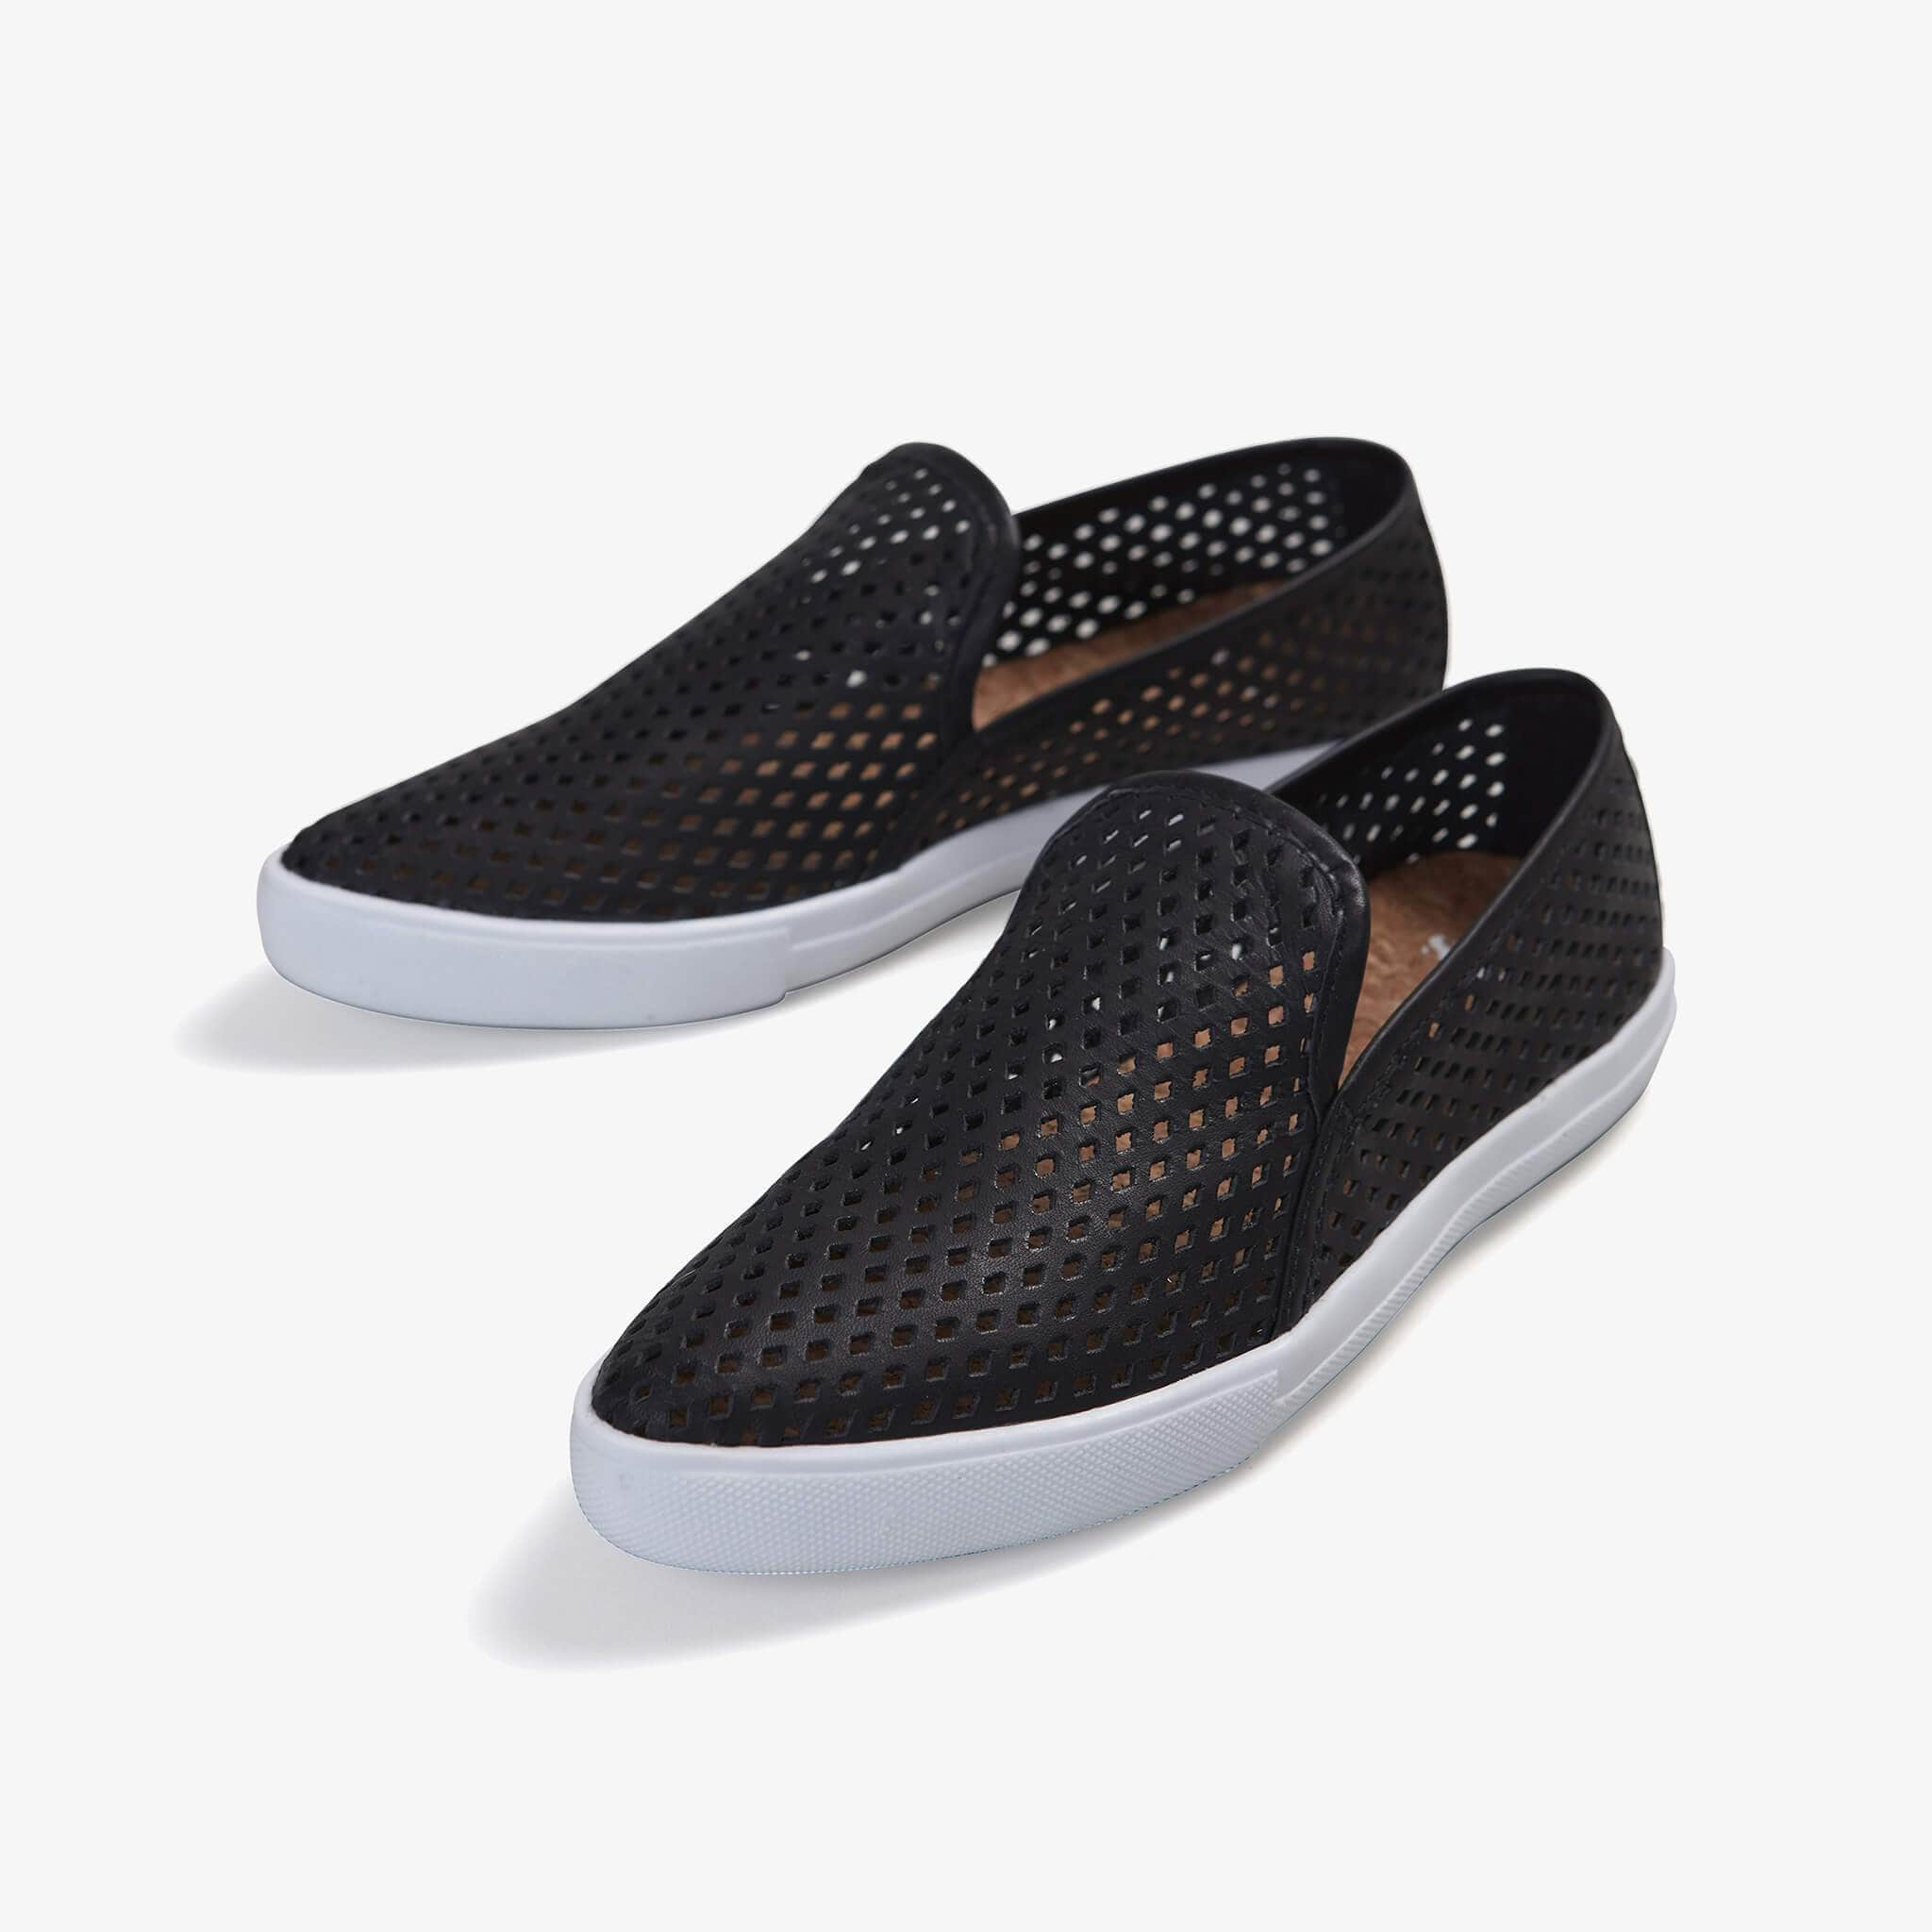 Jibs Slim Jet Black Slip On Sneaker Flat Pair